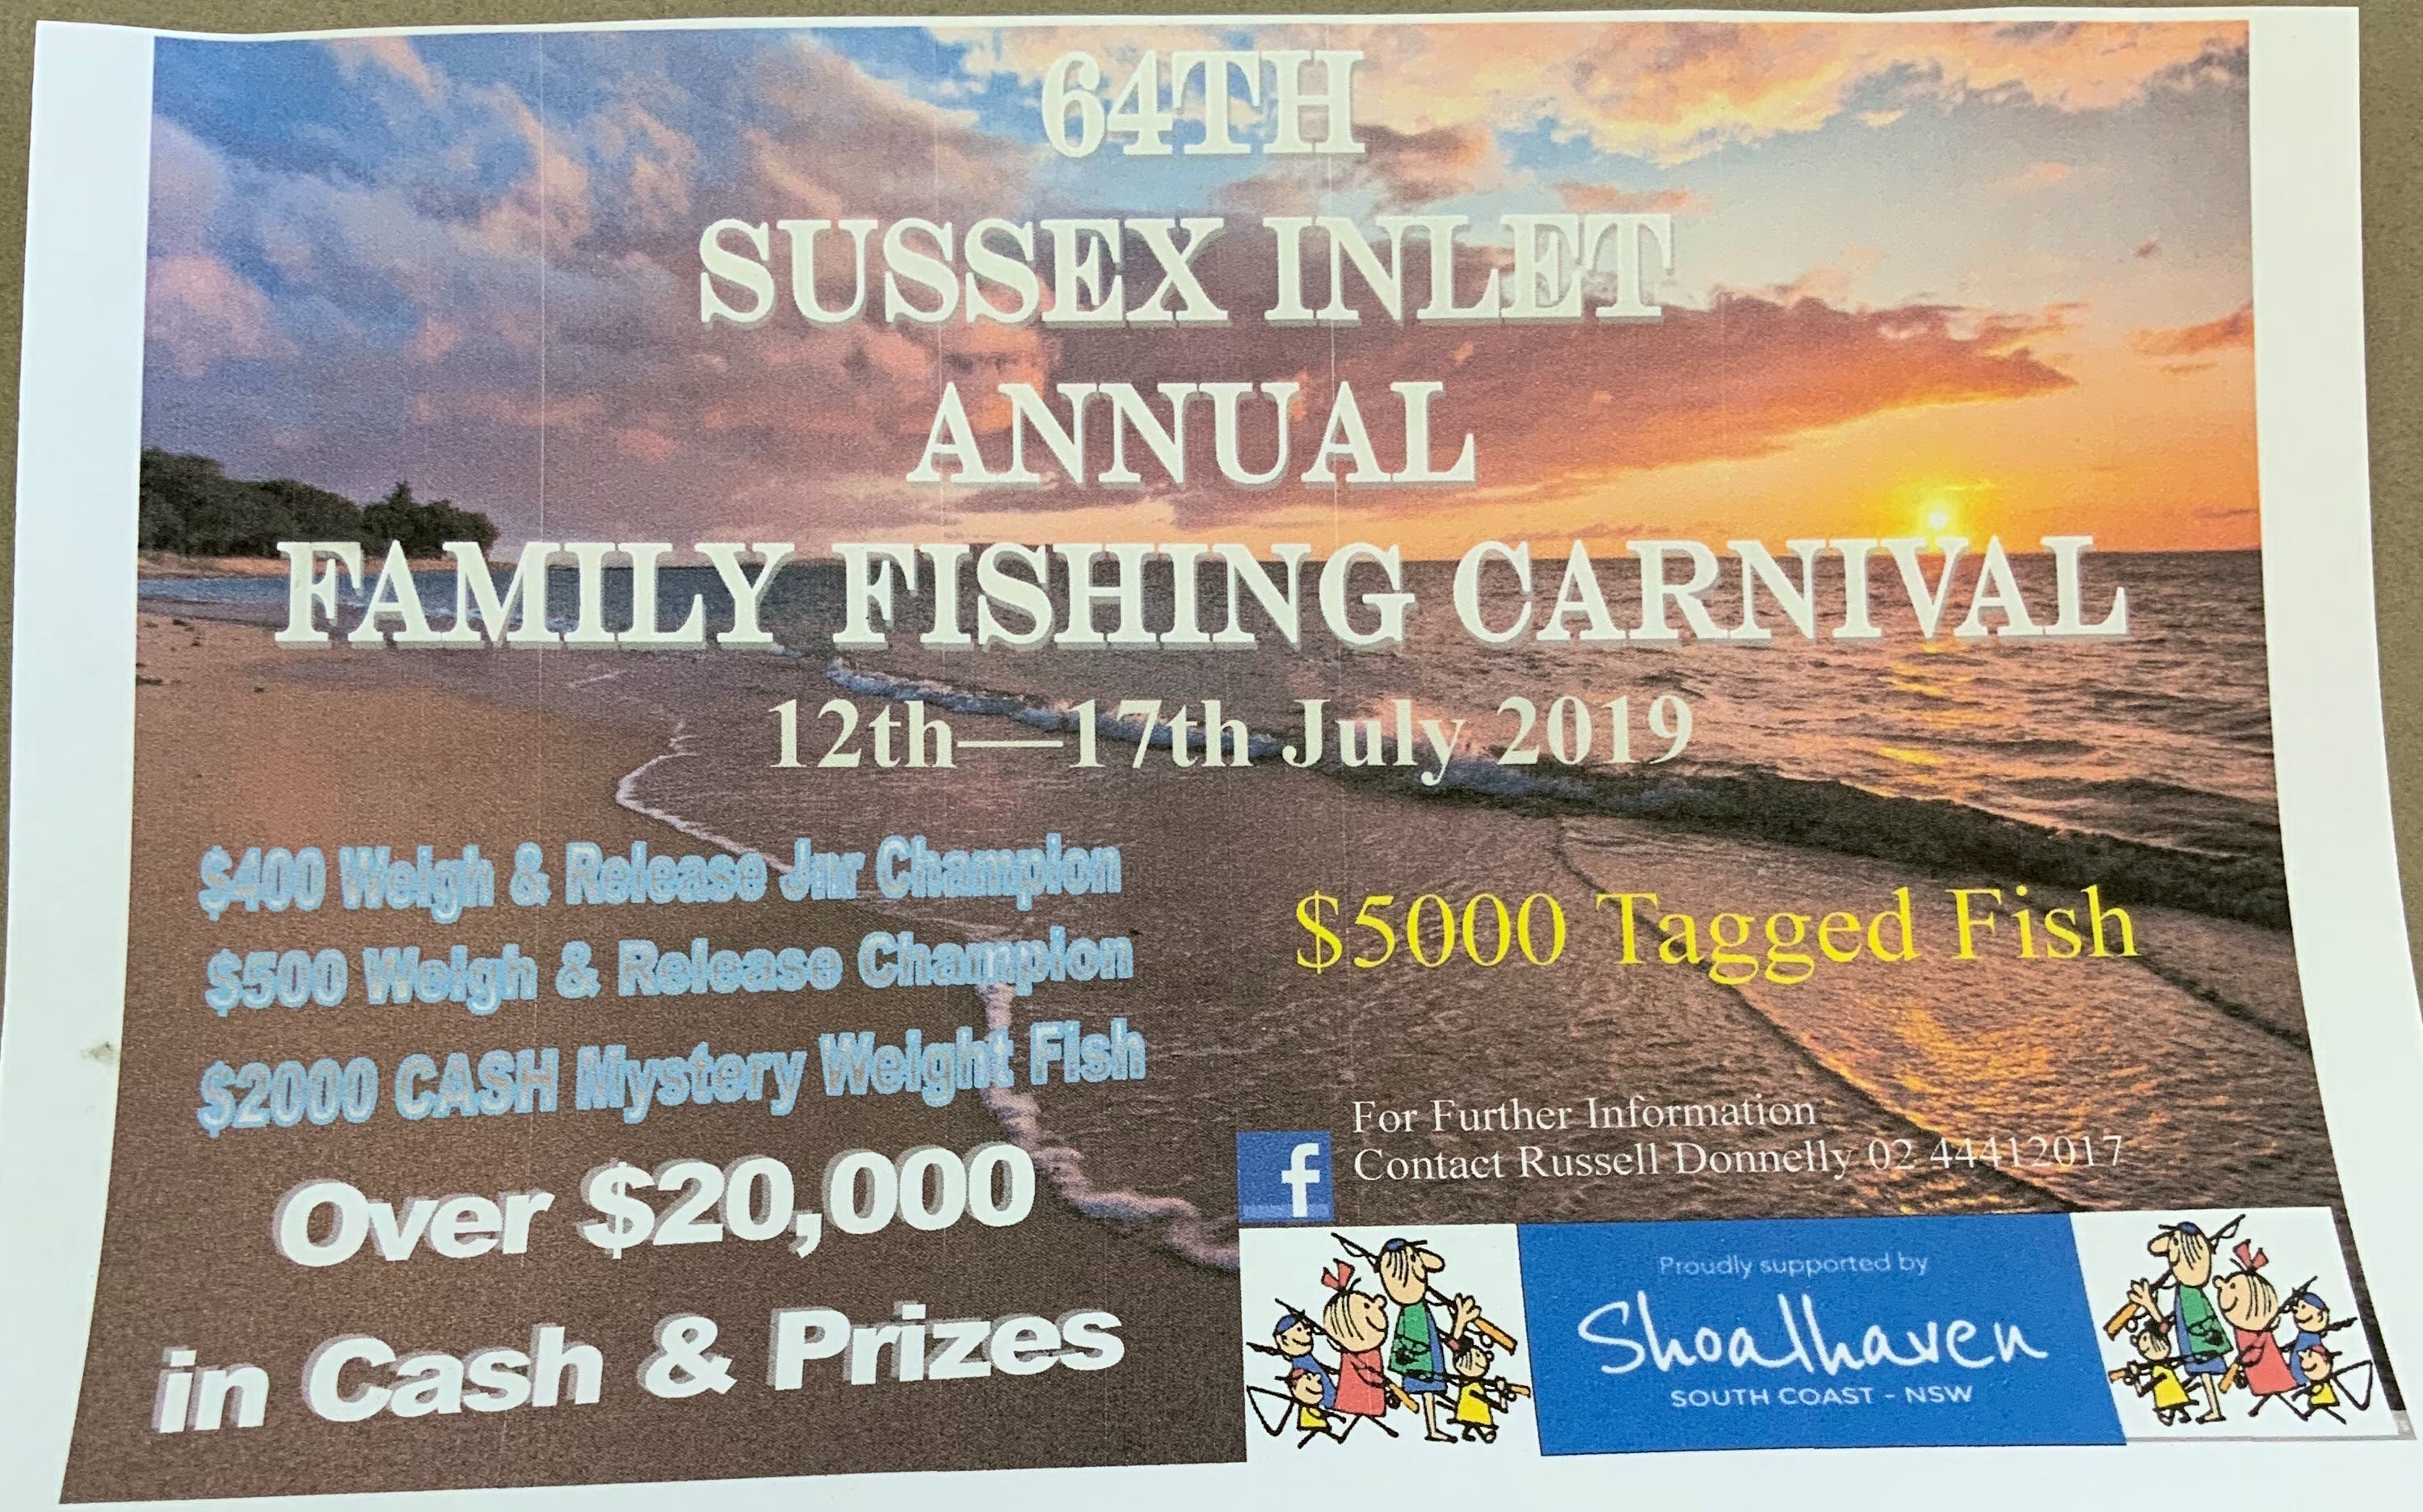 The Sussex Inlet Annual Family Fishing Carnival - Surfers Gold Coast